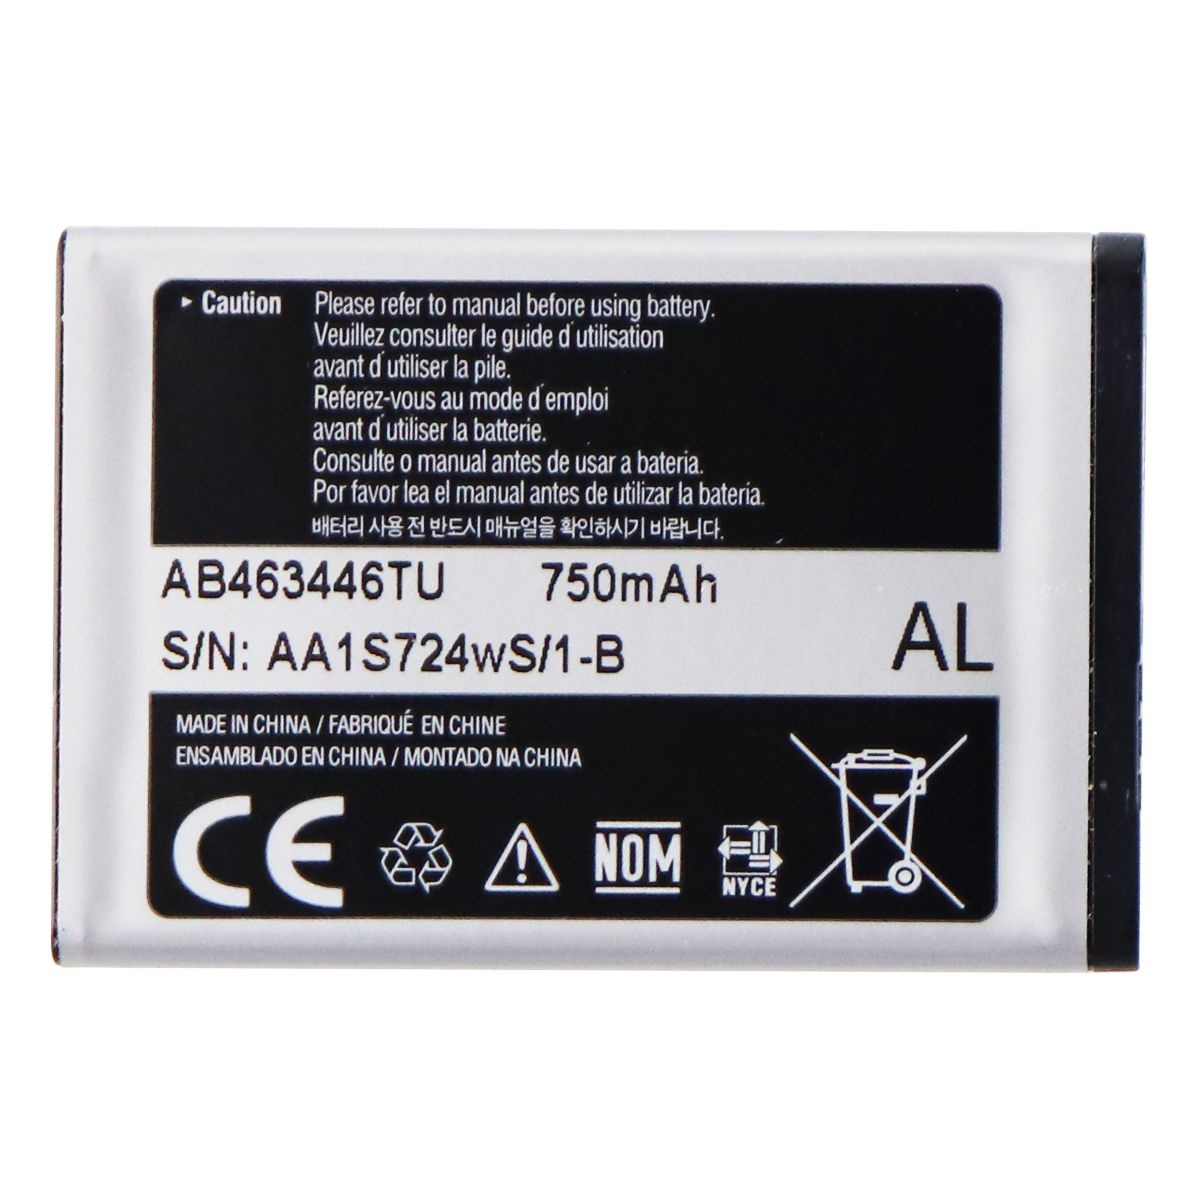 Samsung OEM Rechargeable 750mAh Battery (AB463446TU) for Splash T336 X210 X500